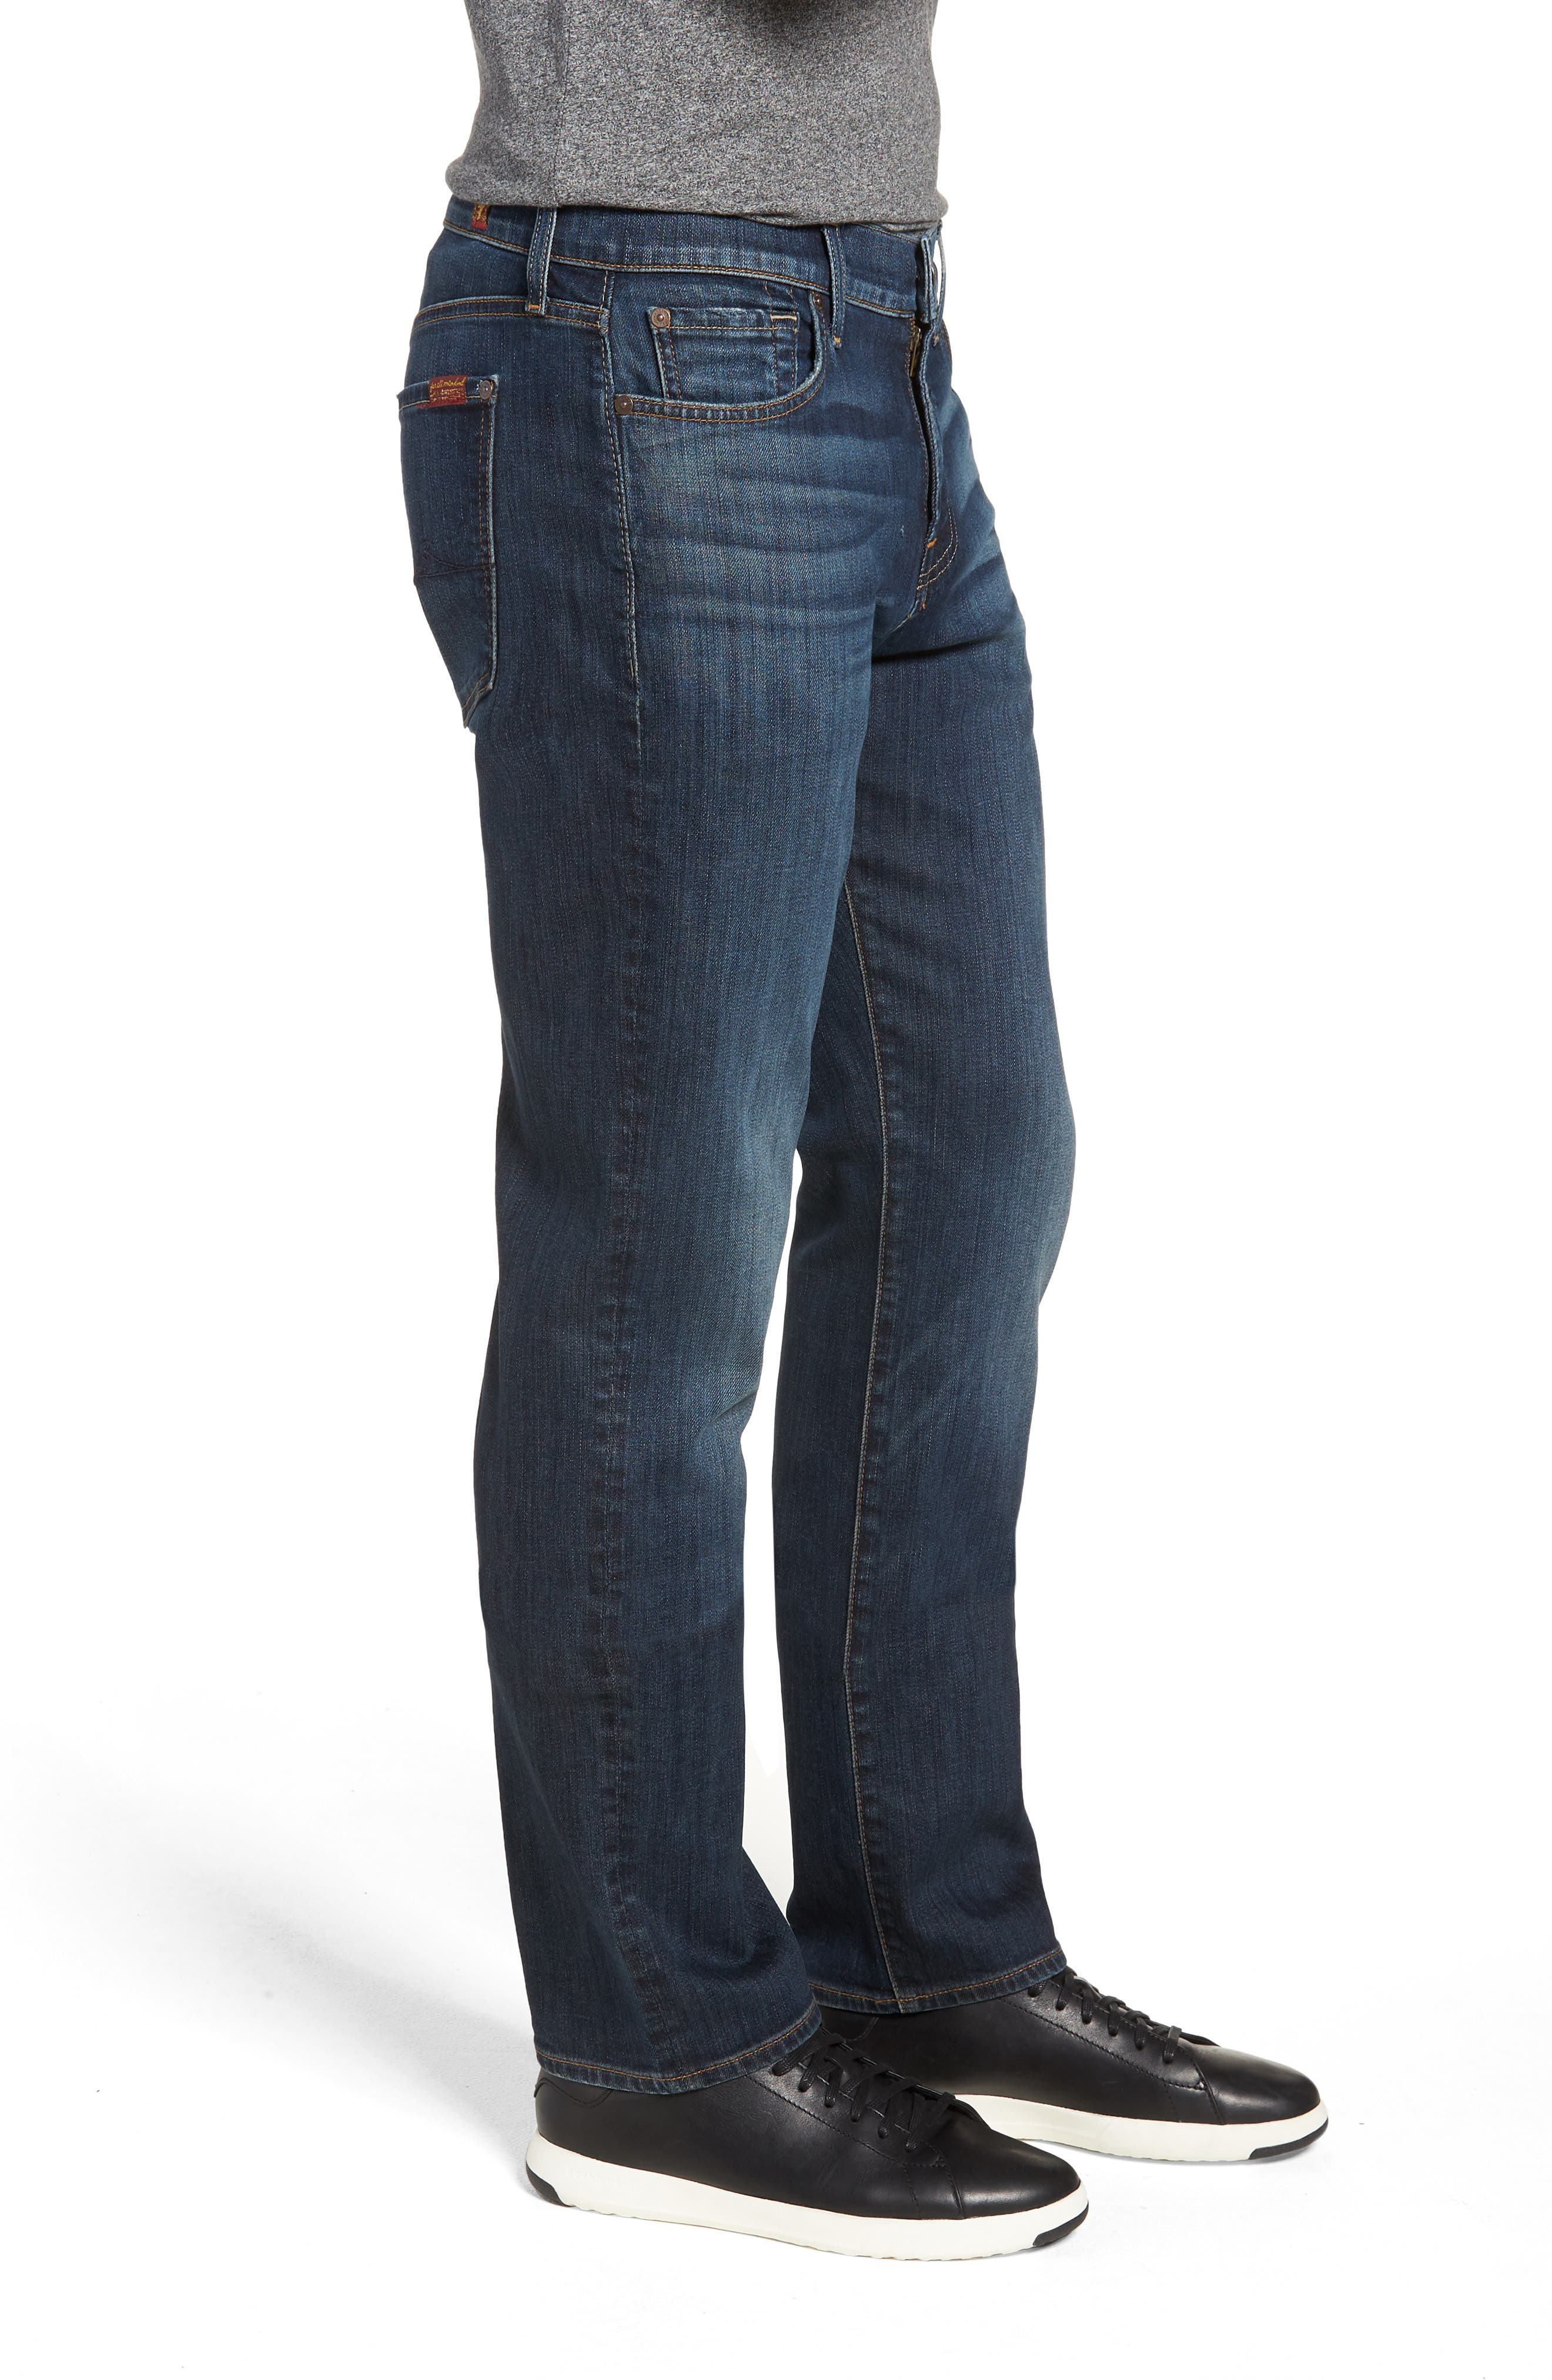 Luxe Performance Standard Straight Leg Jeans,                             Alternate thumbnail 3, color,                             LUXE PERFORMANCE YELM